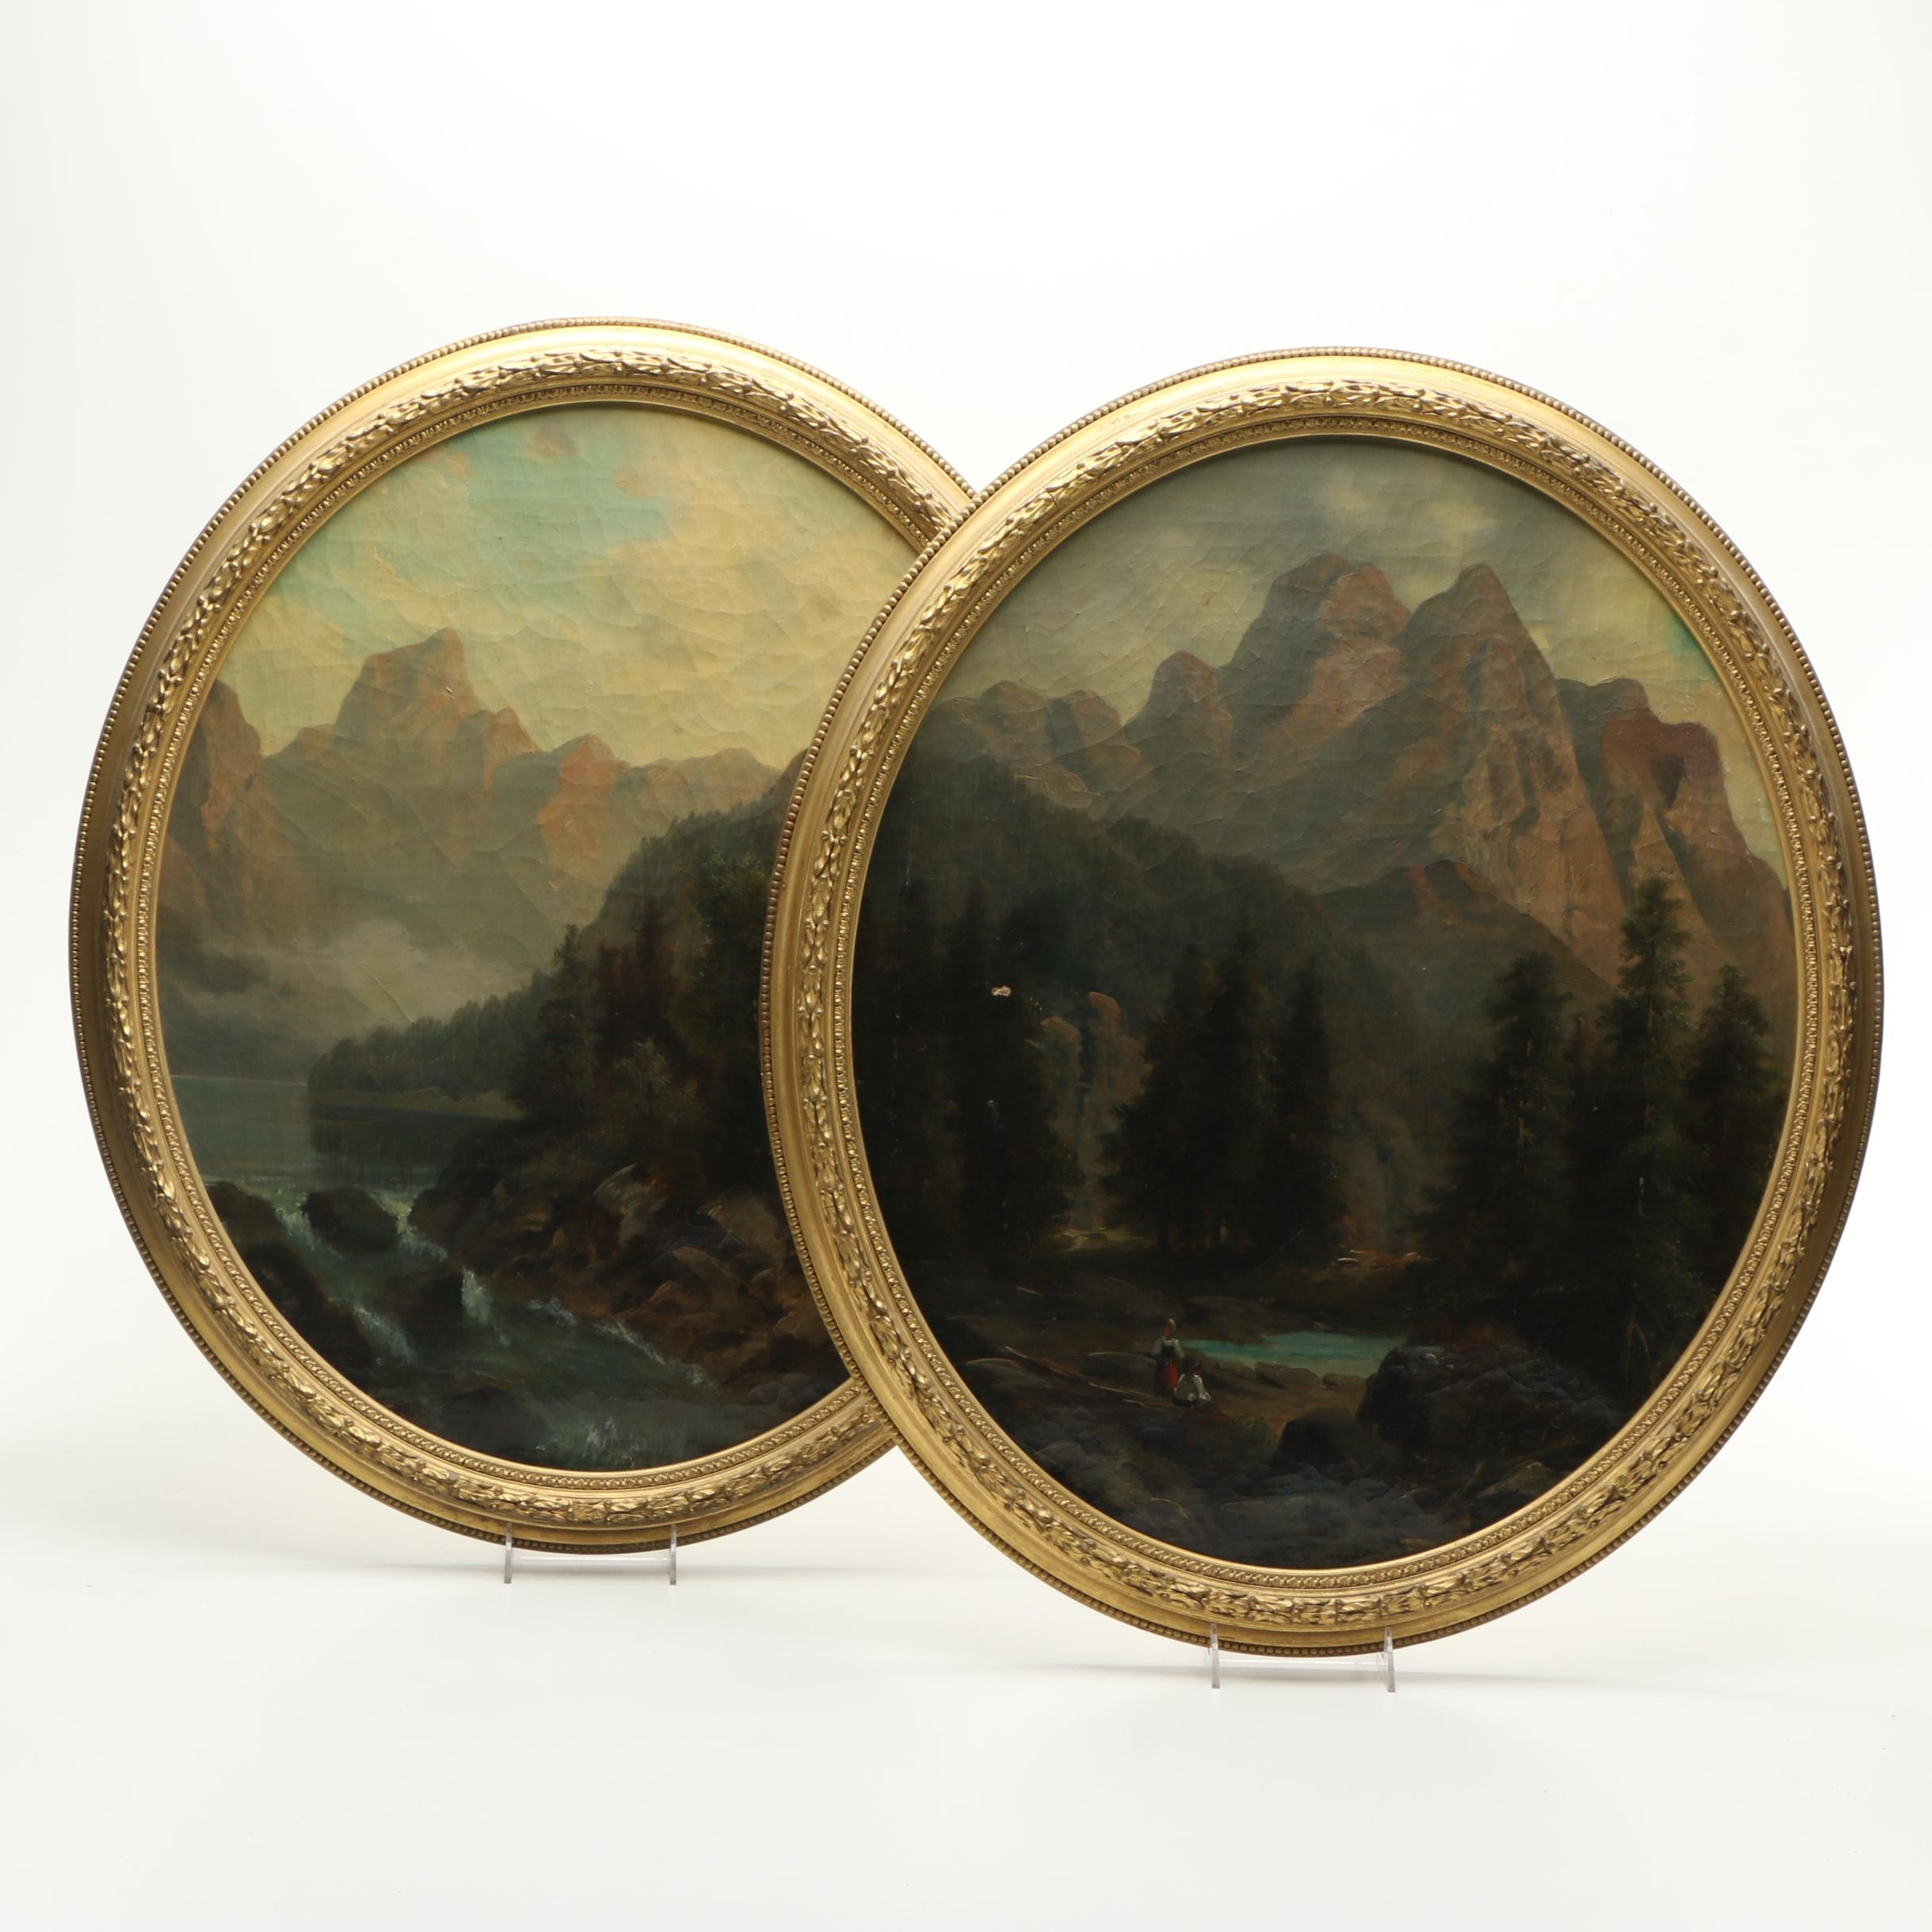 Oil Paintings on Canvas of Mountain Landscapes